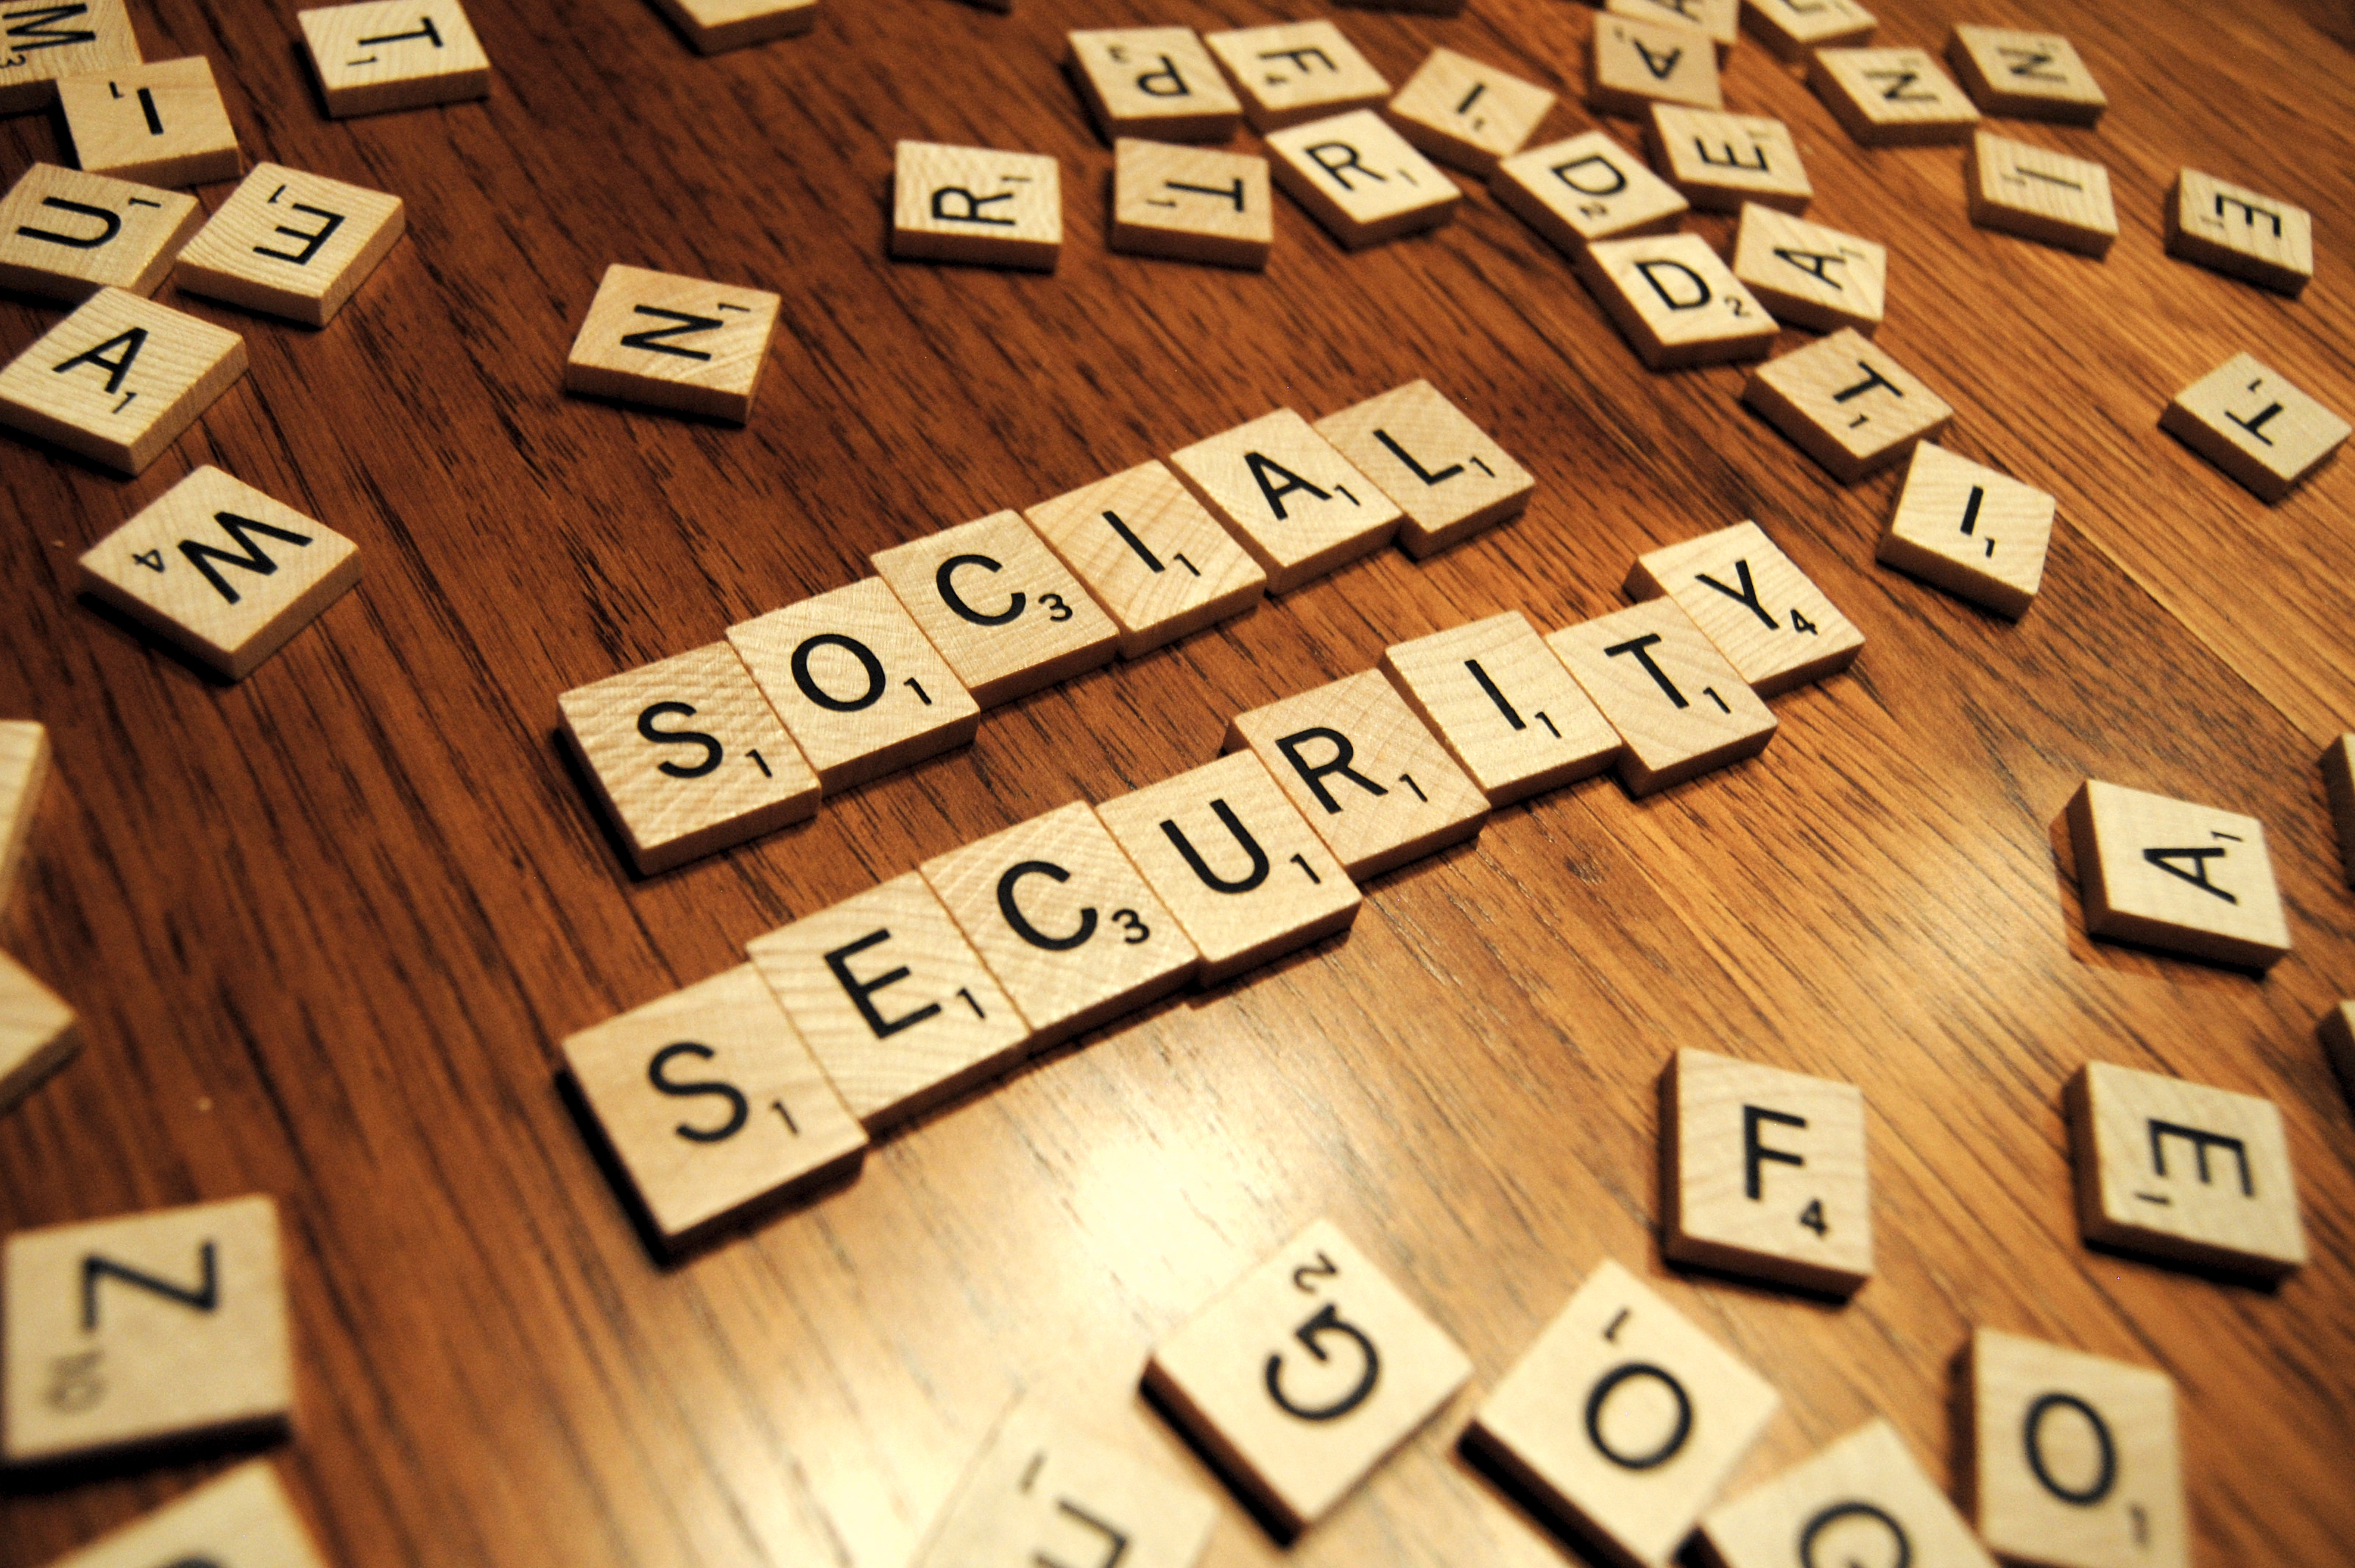 social security scrabble 2